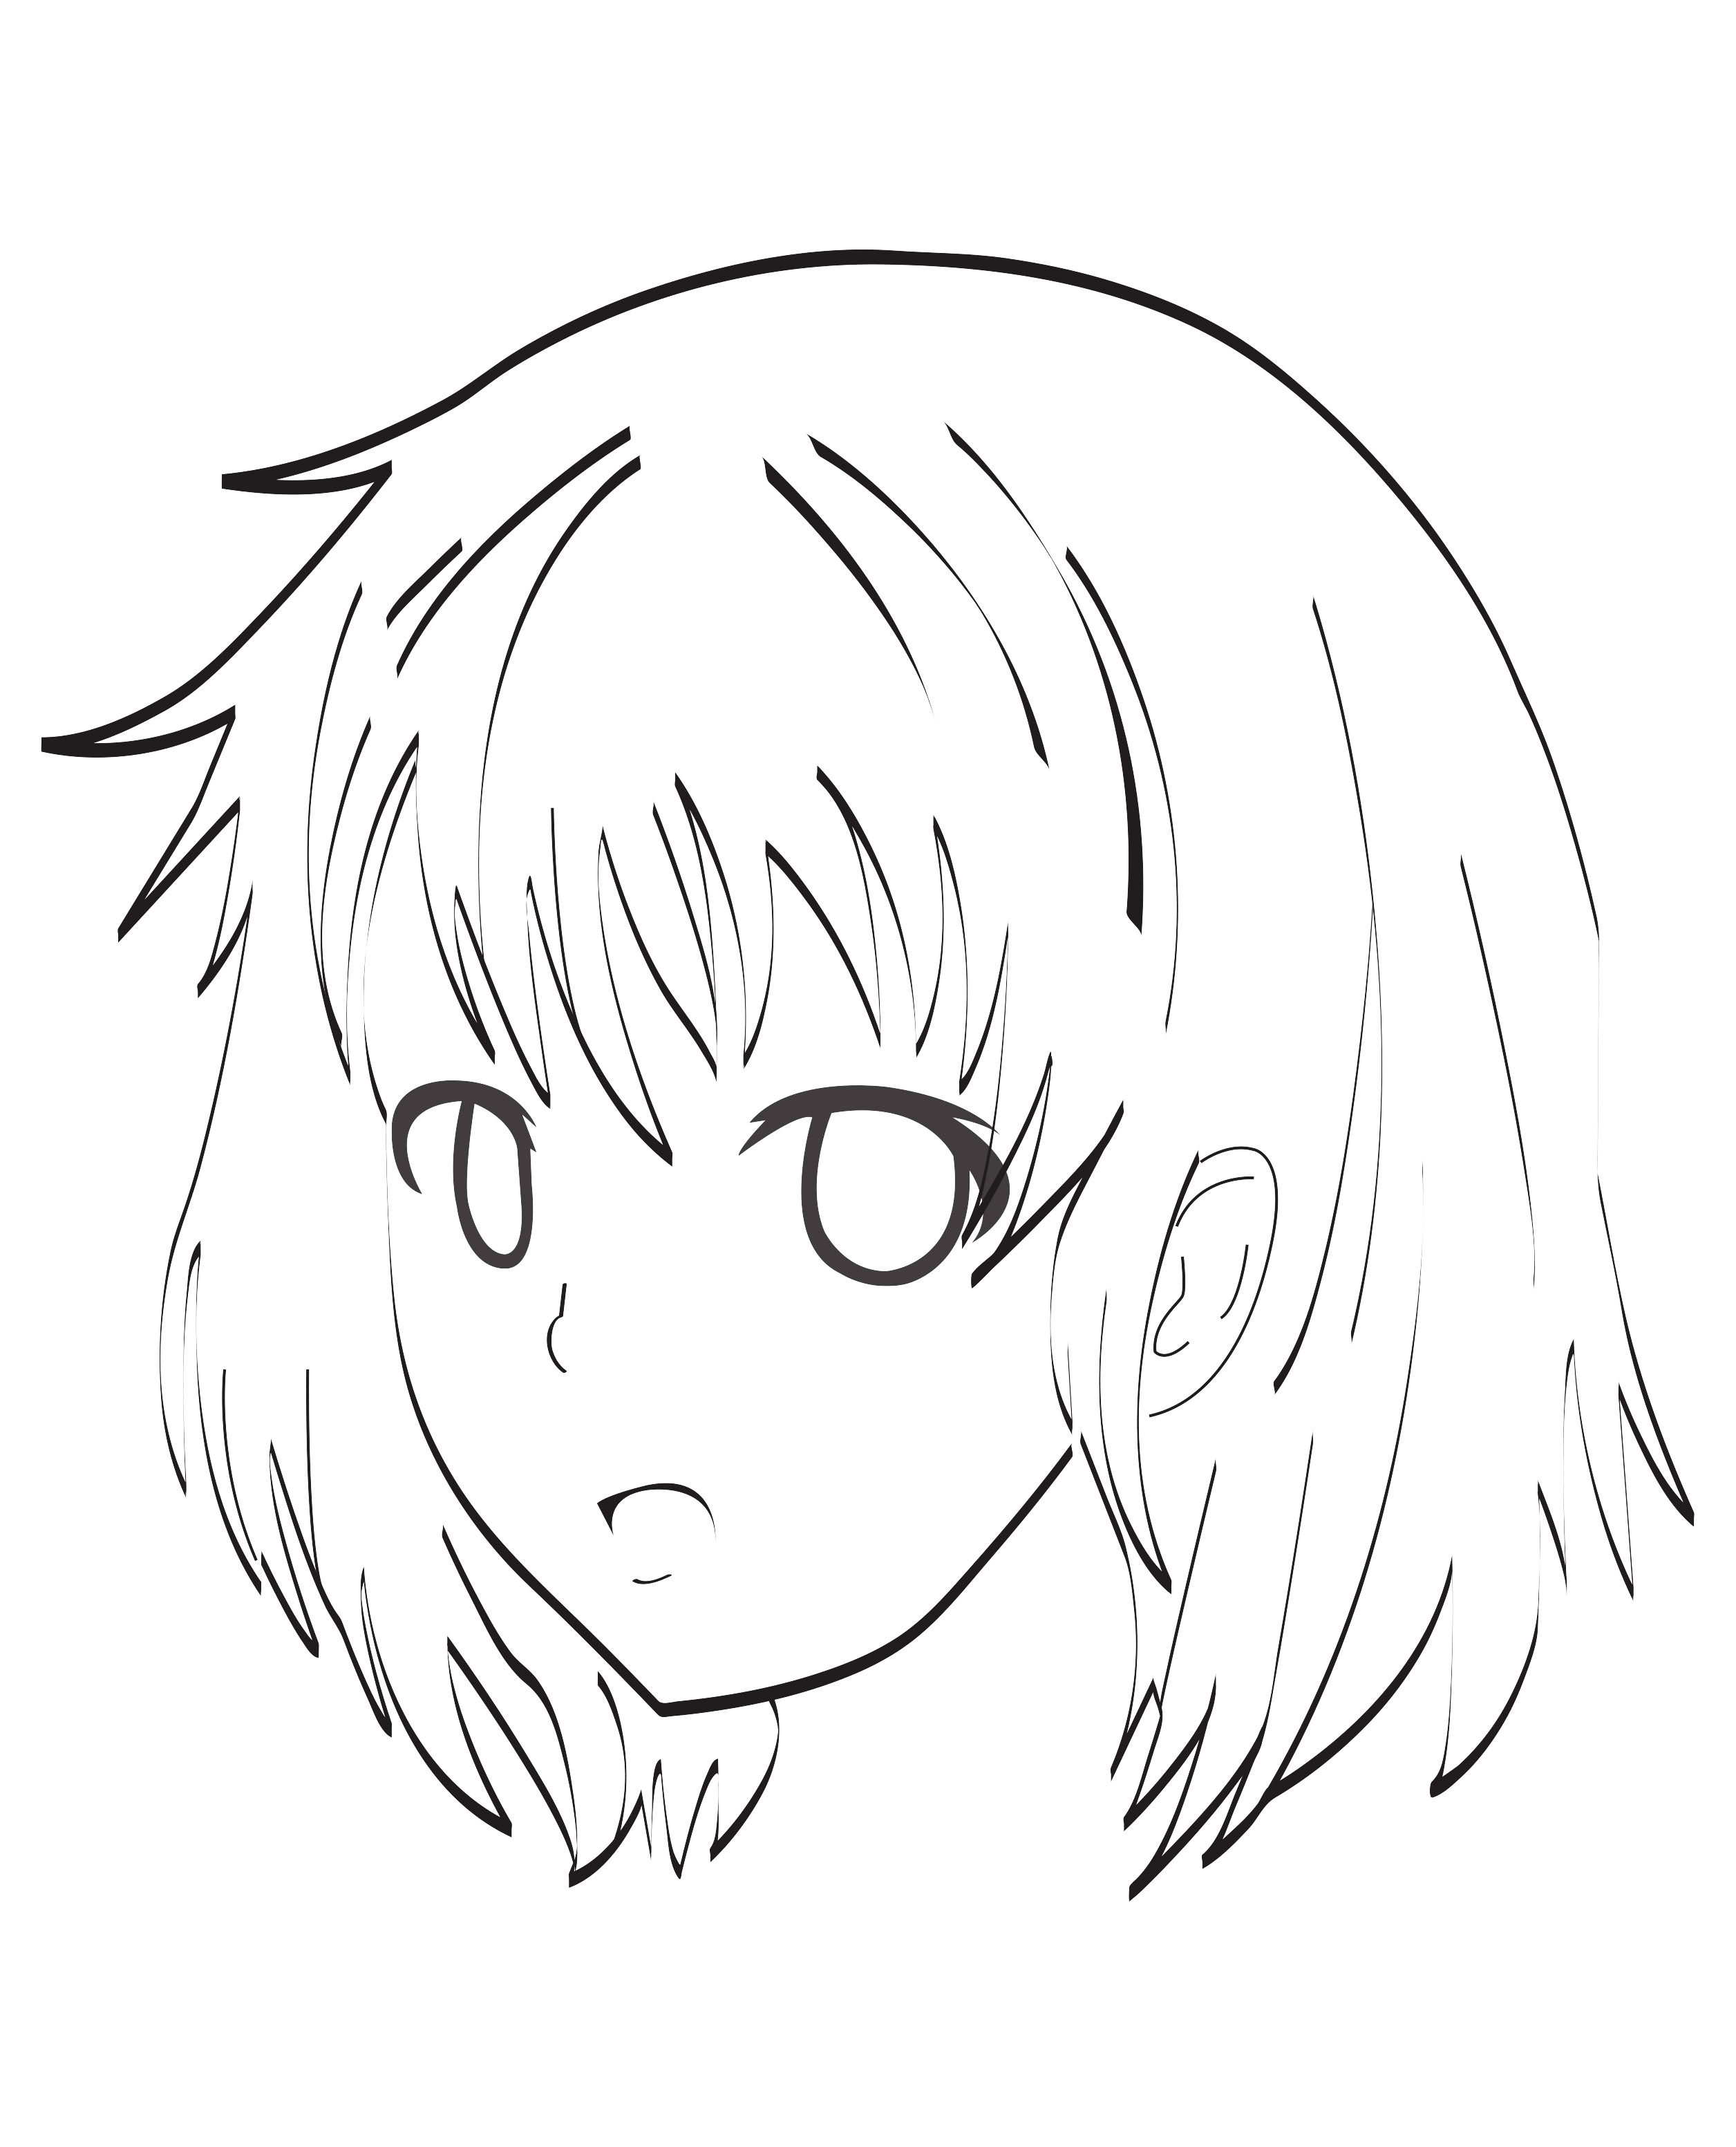 A very simple coloring page of a Manga female character face